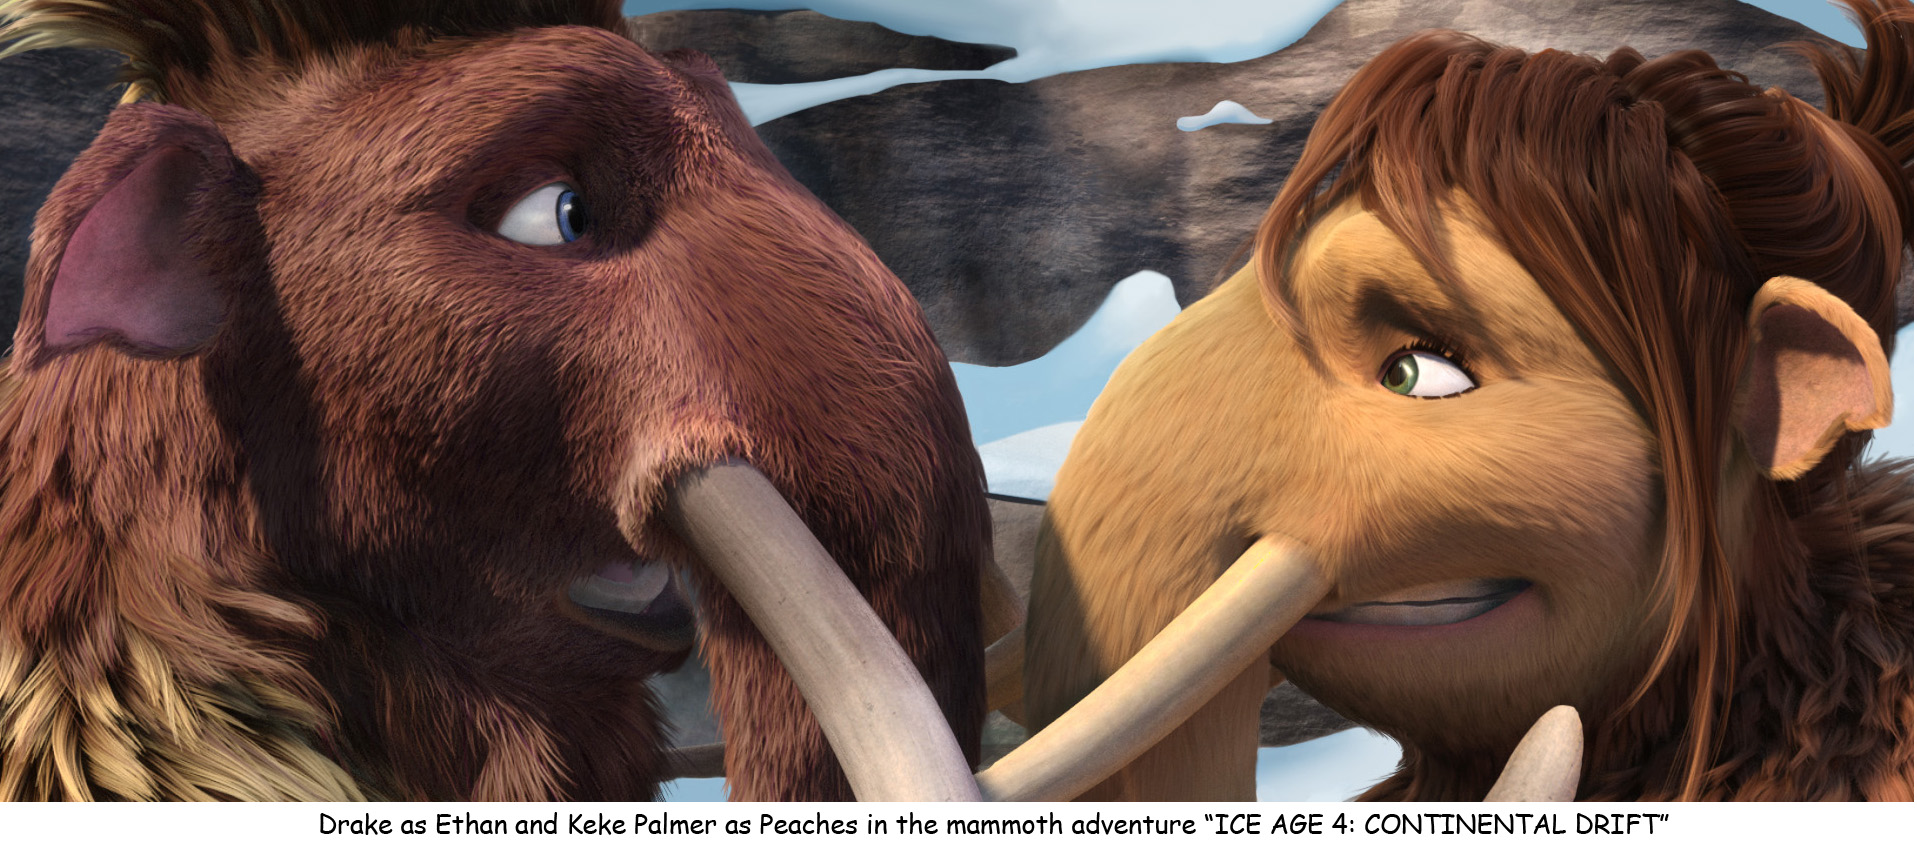 music's 'it' young artists in ice age 4: continental drift